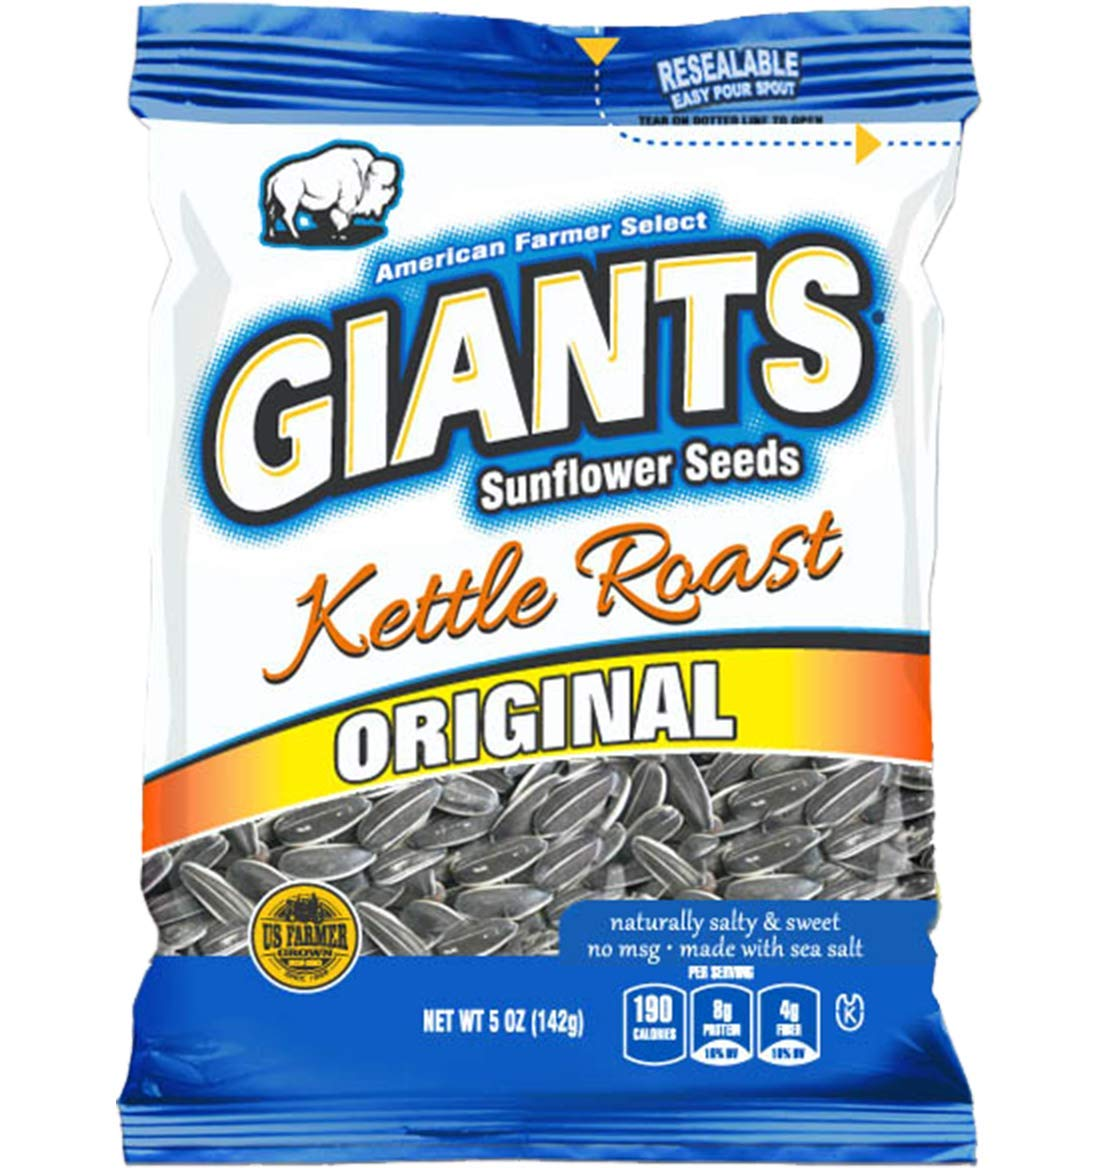 GIANTS Sunflower Seeds Roasted Salty Sweet Flavor, 5-Ounce Bags (Pack of 12) by GIANTS